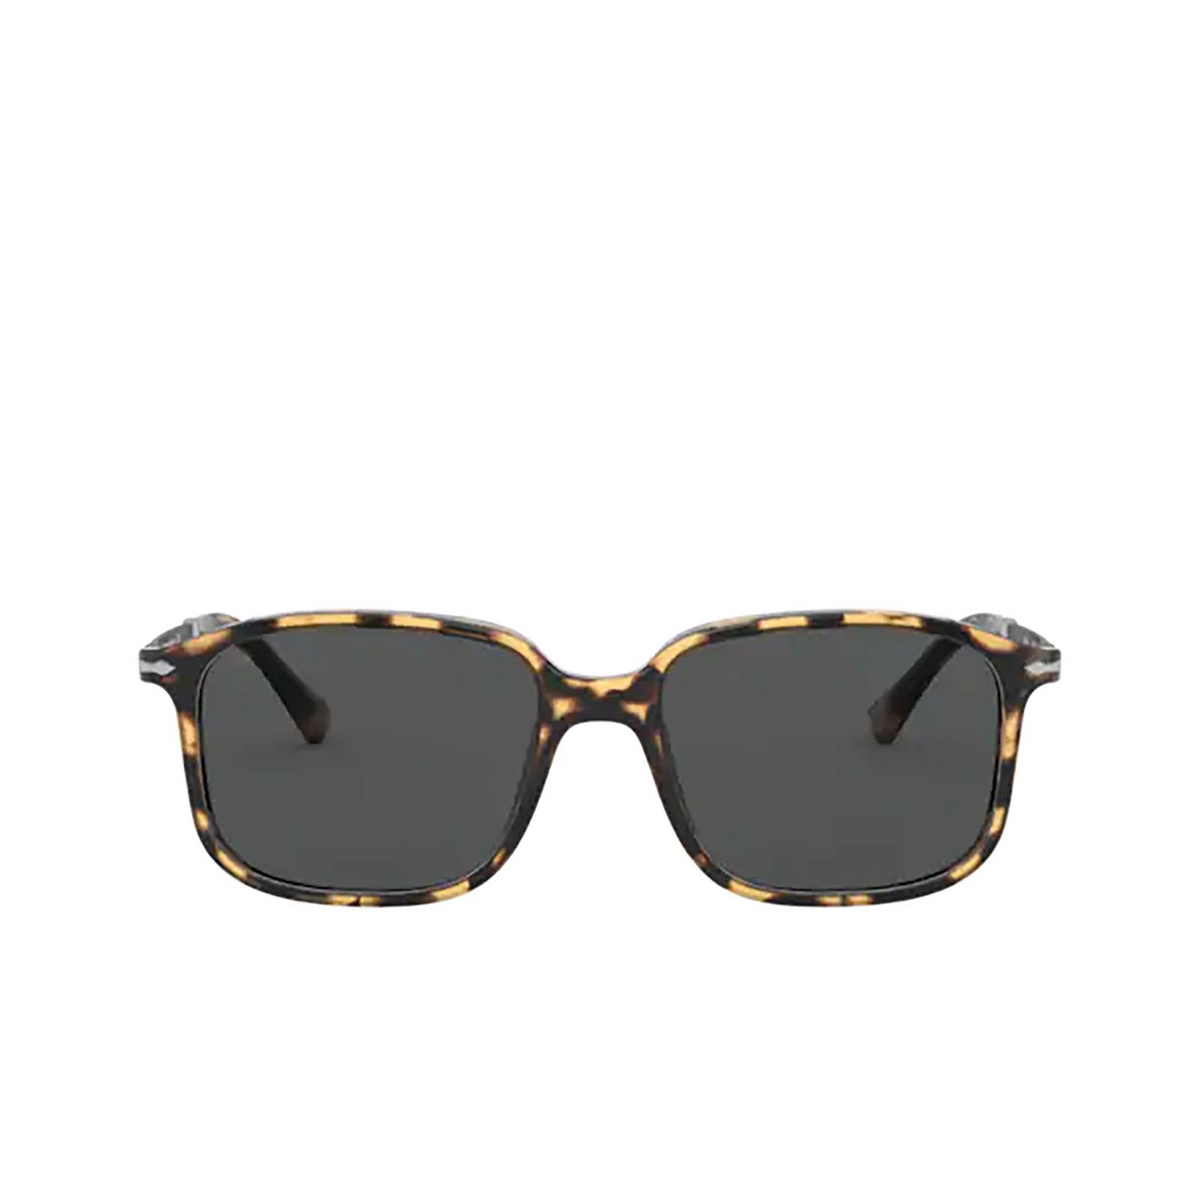 Persol® Rectangle Sunglasses: PO3246S color Brown & Beige Tortoise 1056B1 - front view.